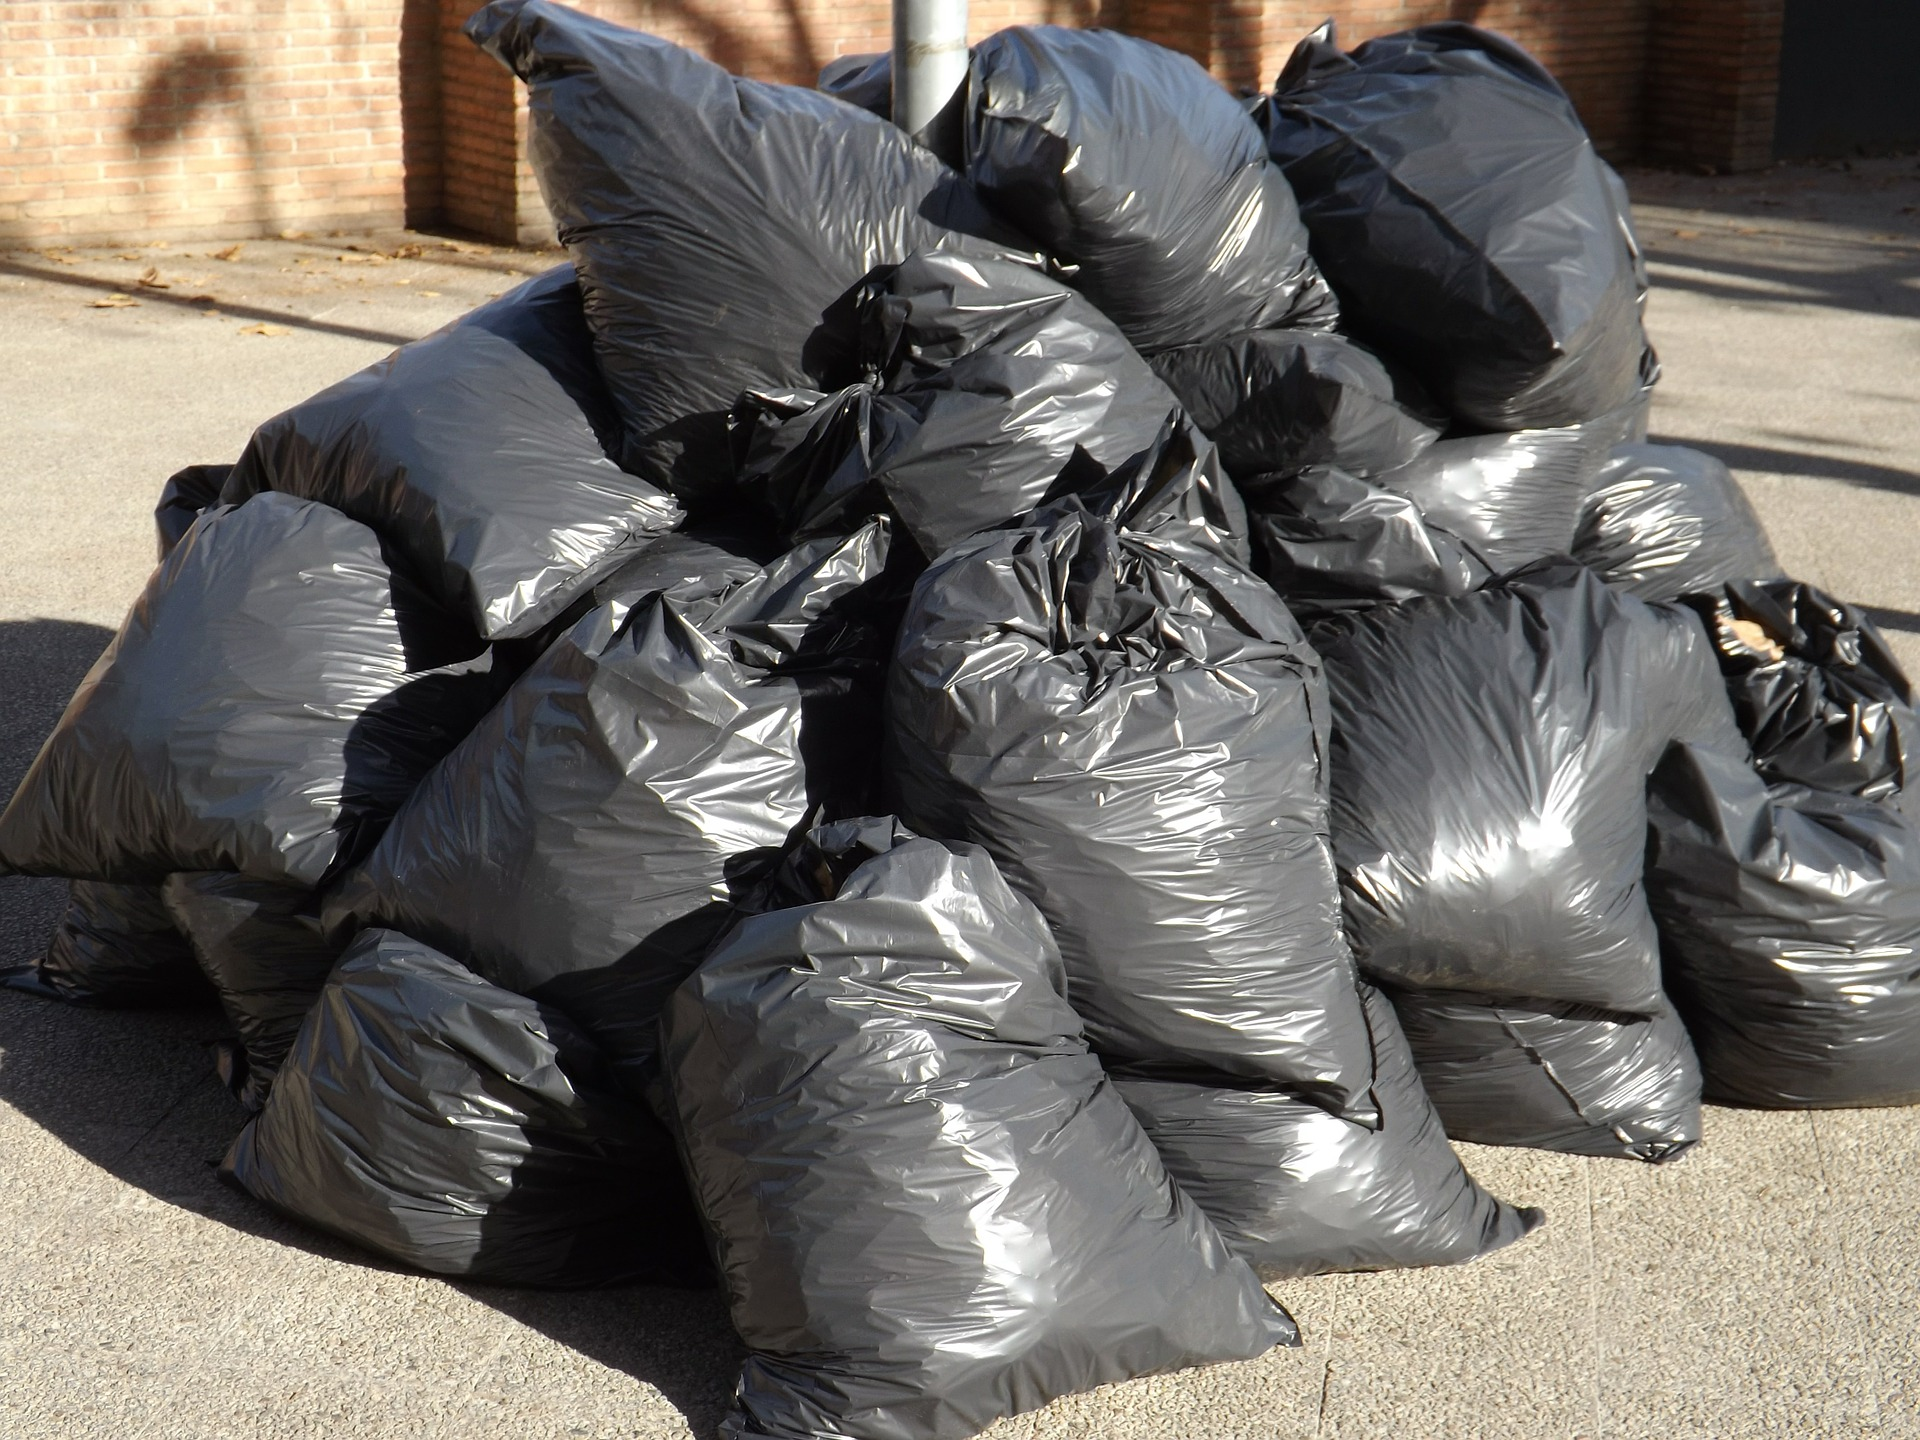 Garbage Bags Market Key Players, Product and Production Information analysis and forecast 2021 - 2031